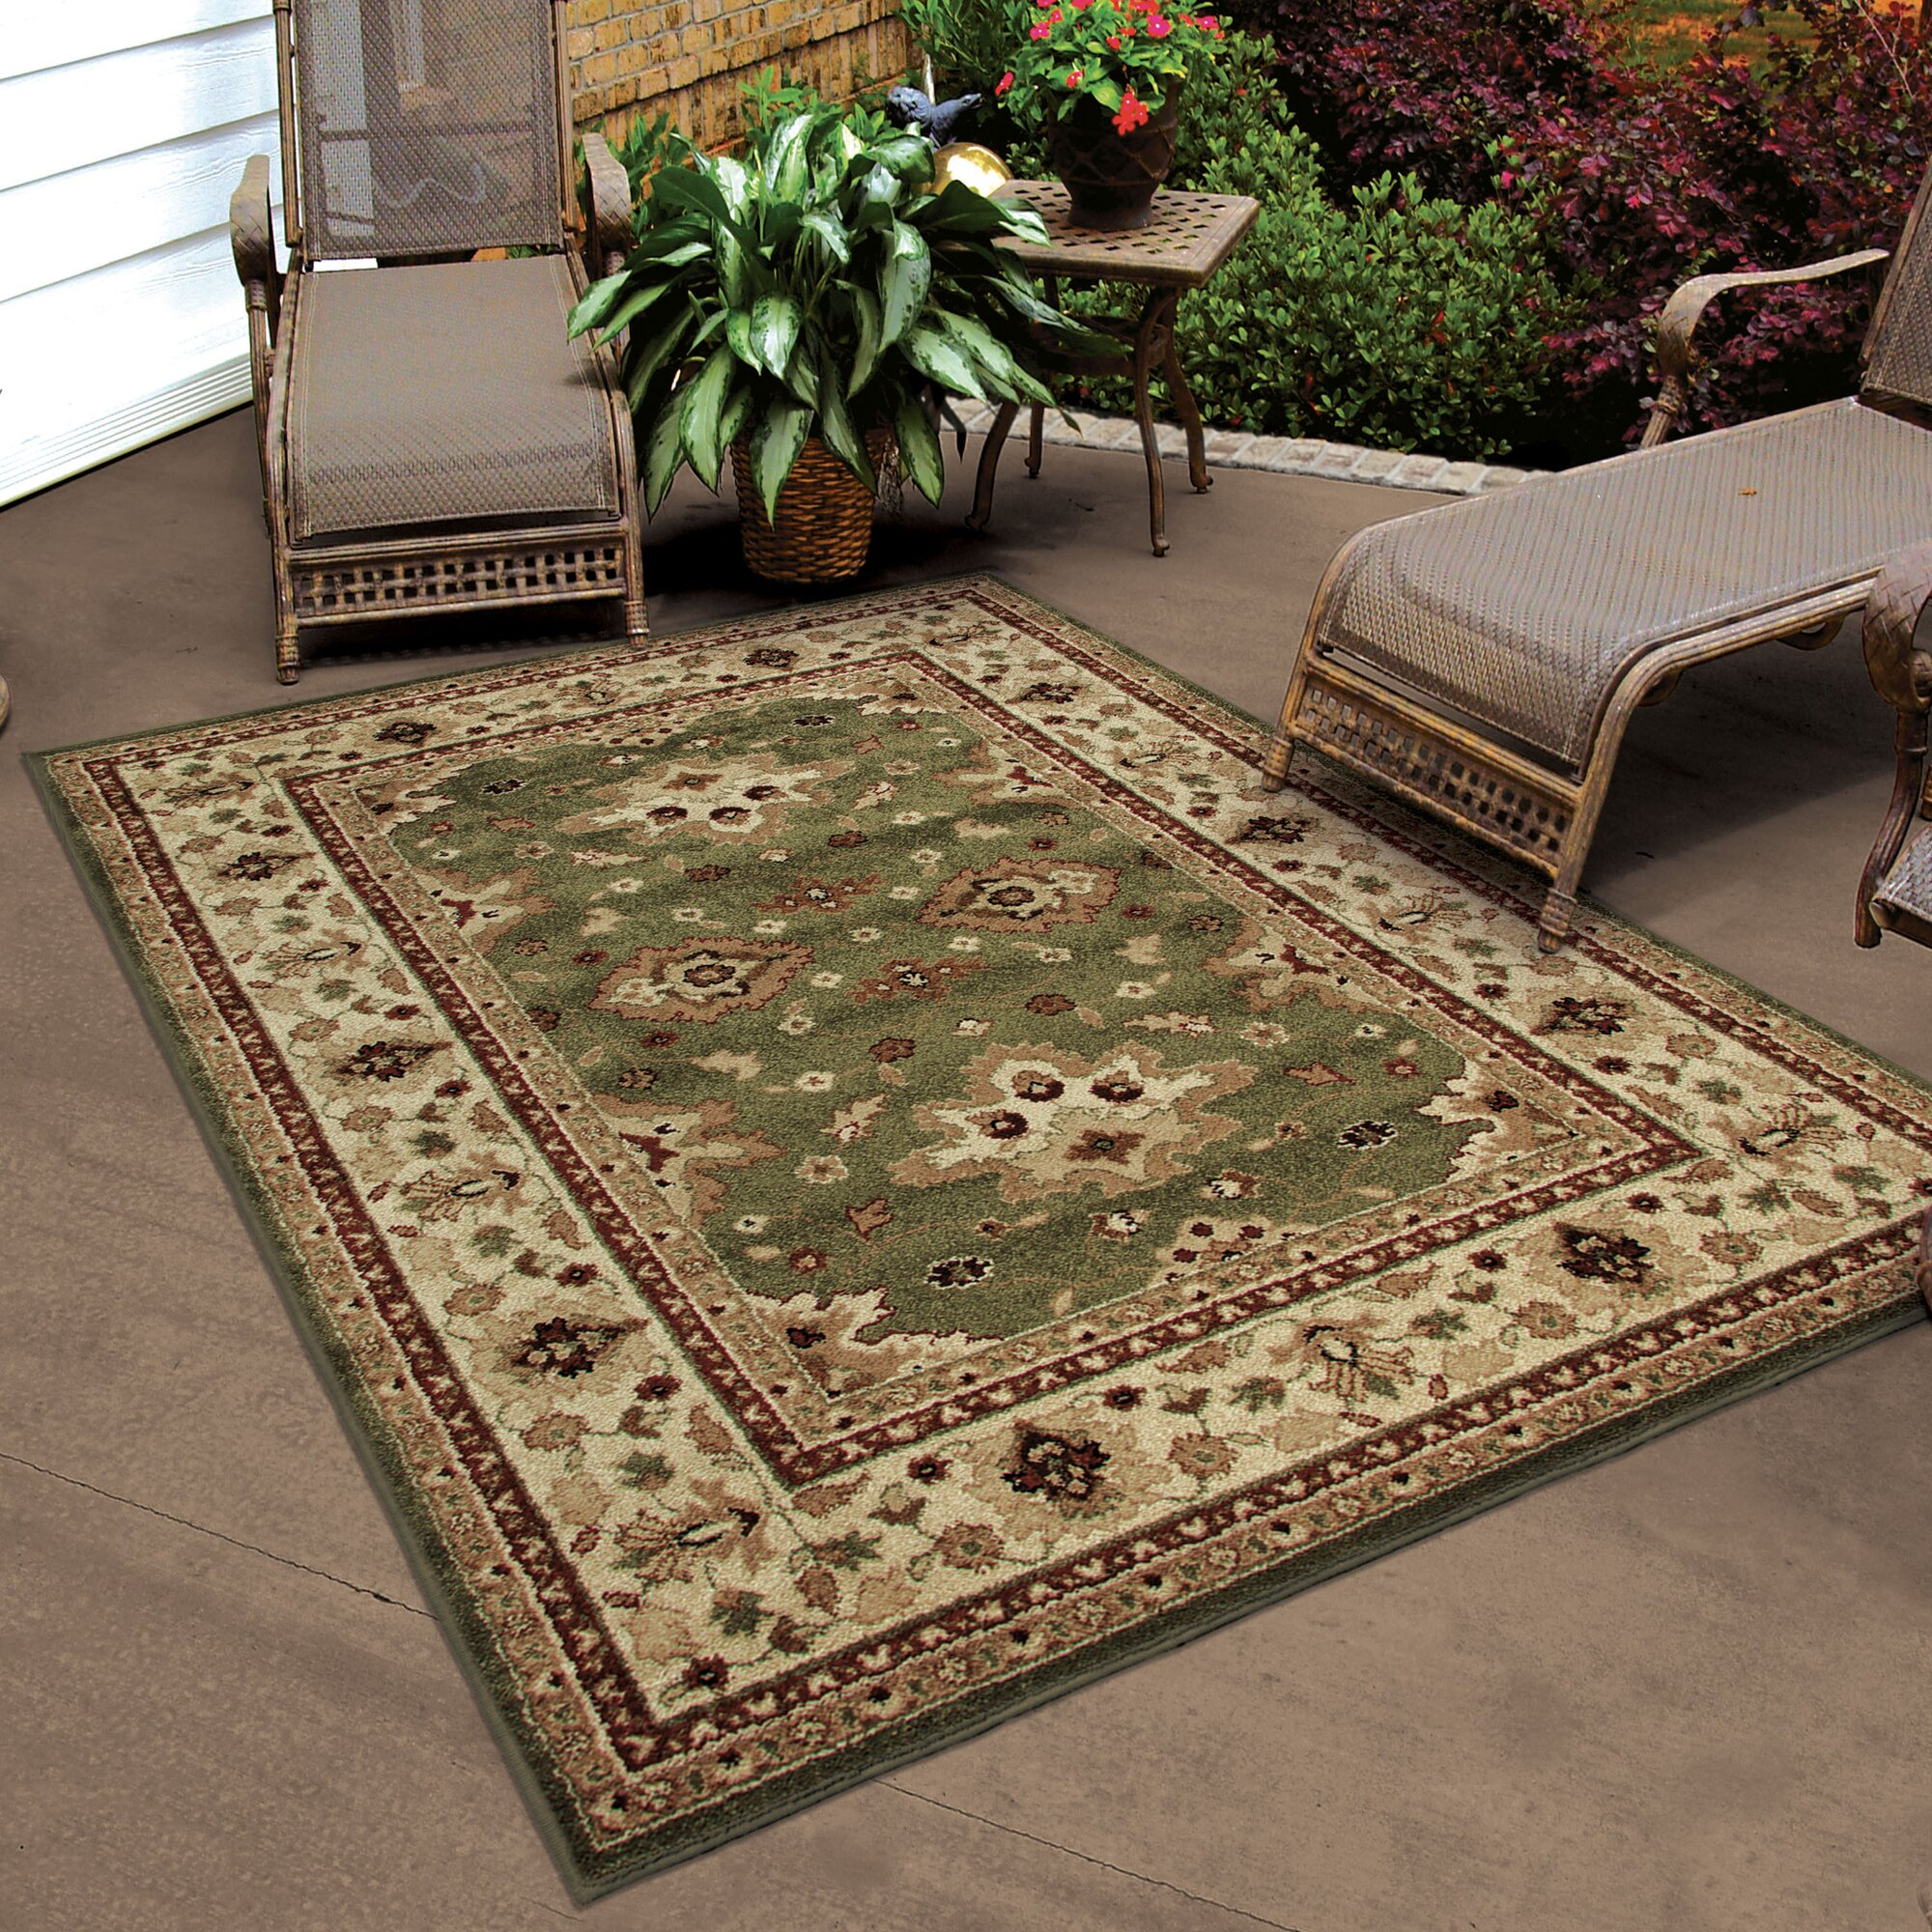 Threadbind montrose green indoor outdoor area rug for Indoor outdoor carpet green